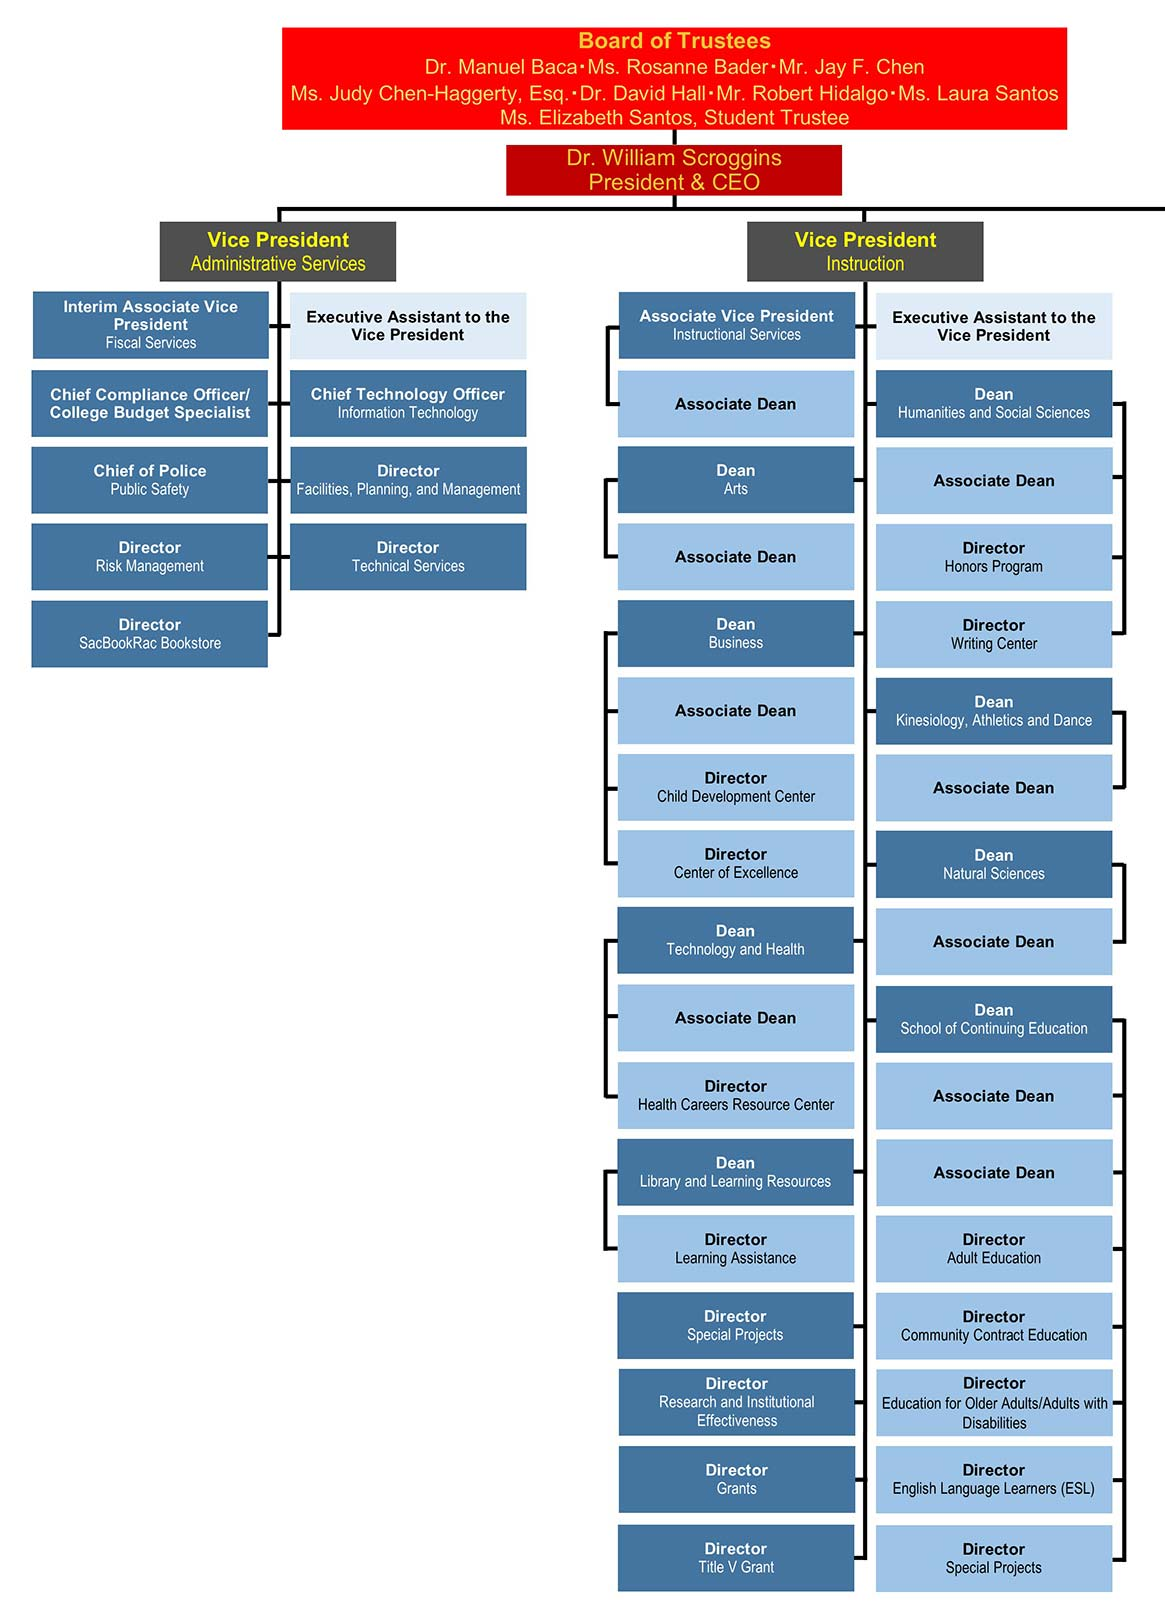 Org Chart Image 1 of 2